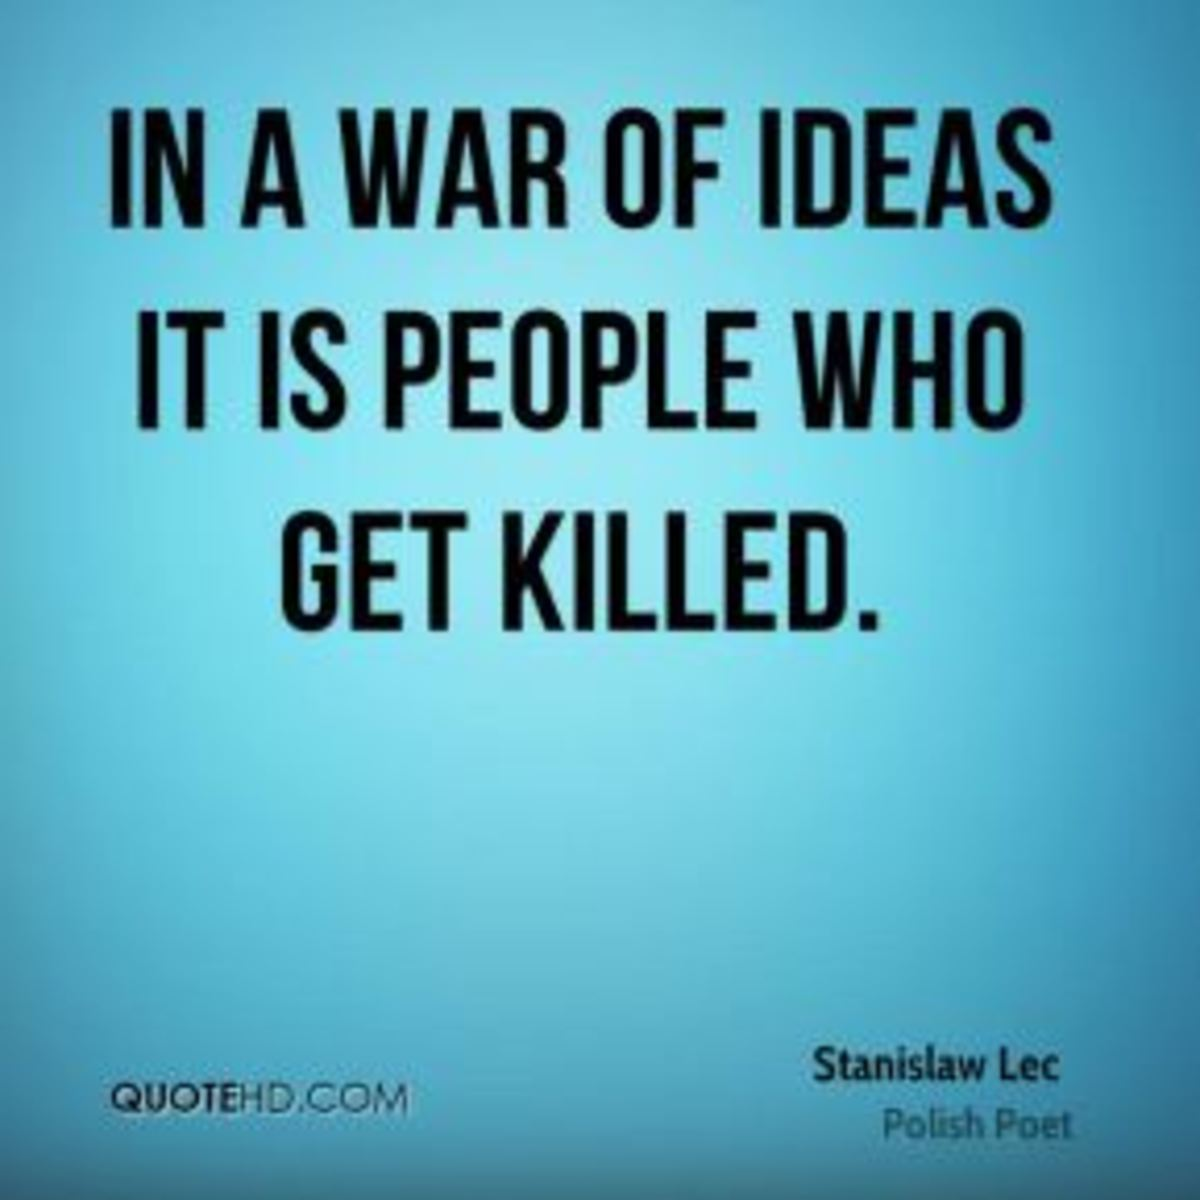 When the Cookie Crumbles: The War of Ideas in the Social Battlefield - New Ideas of Digital Wars of the Present Future